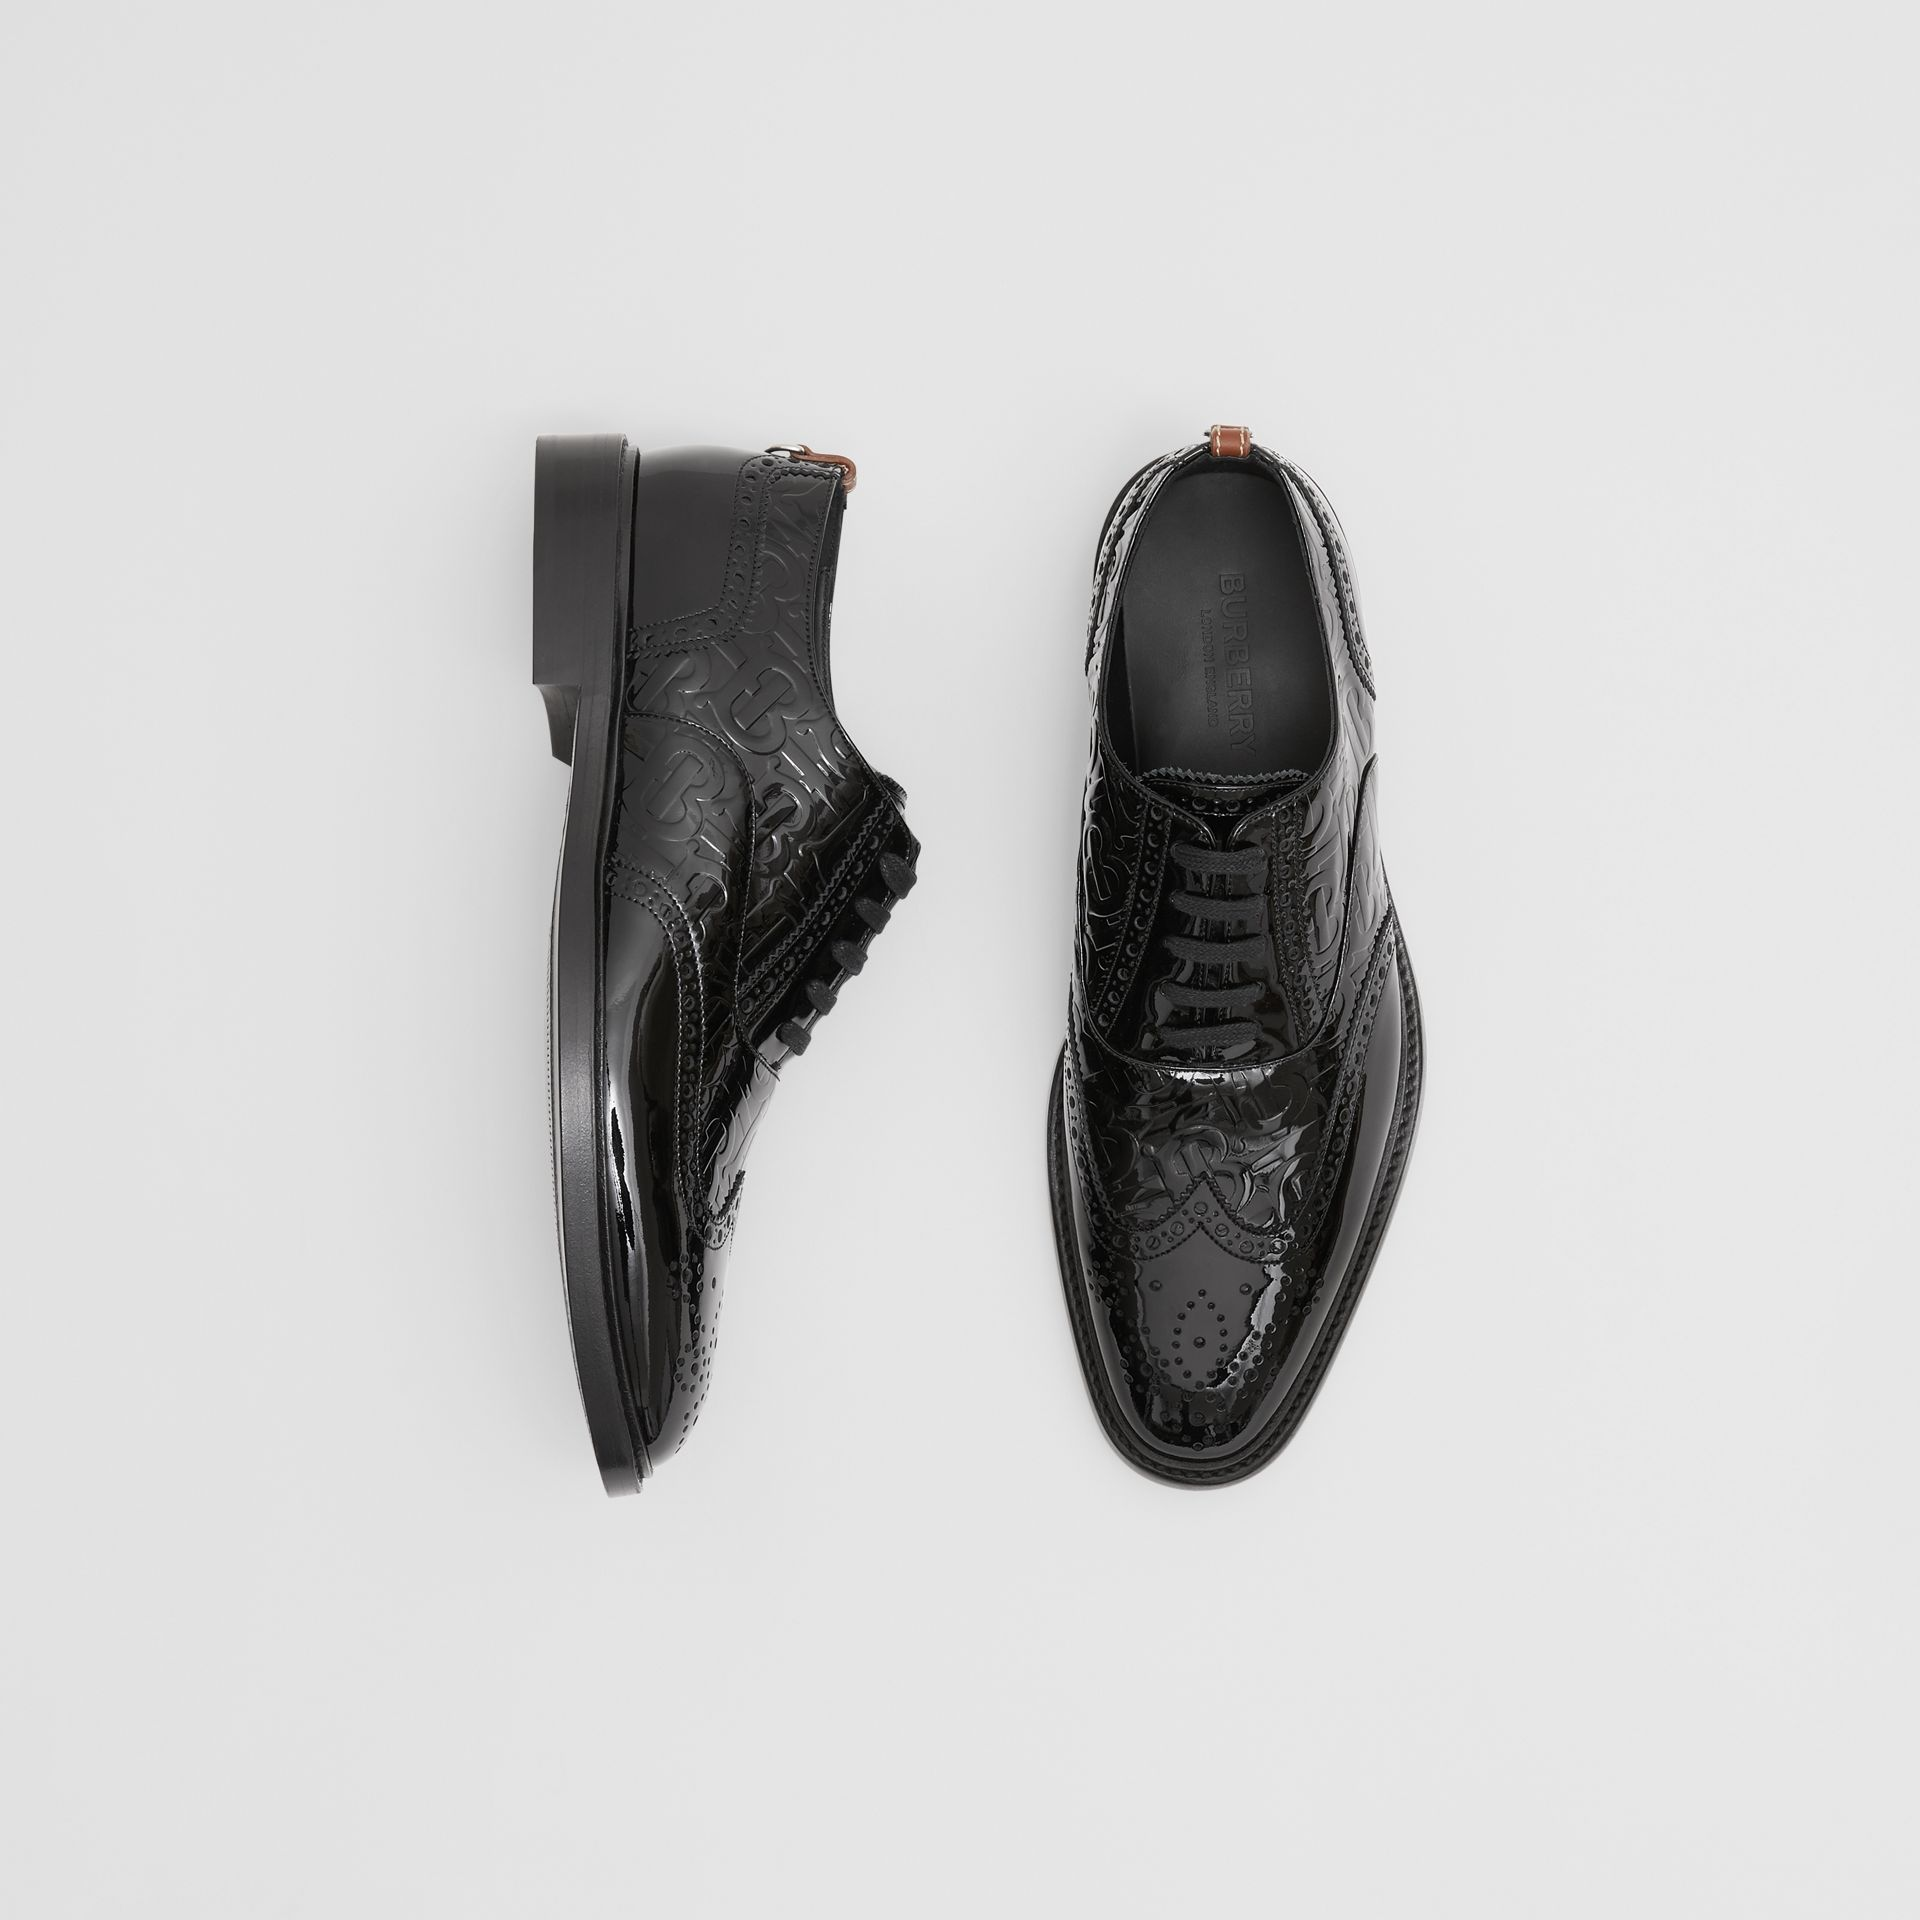 D-ring Detail Monogram Patent Leather Brogues in Black - Men | Burberry Canada - gallery image 0